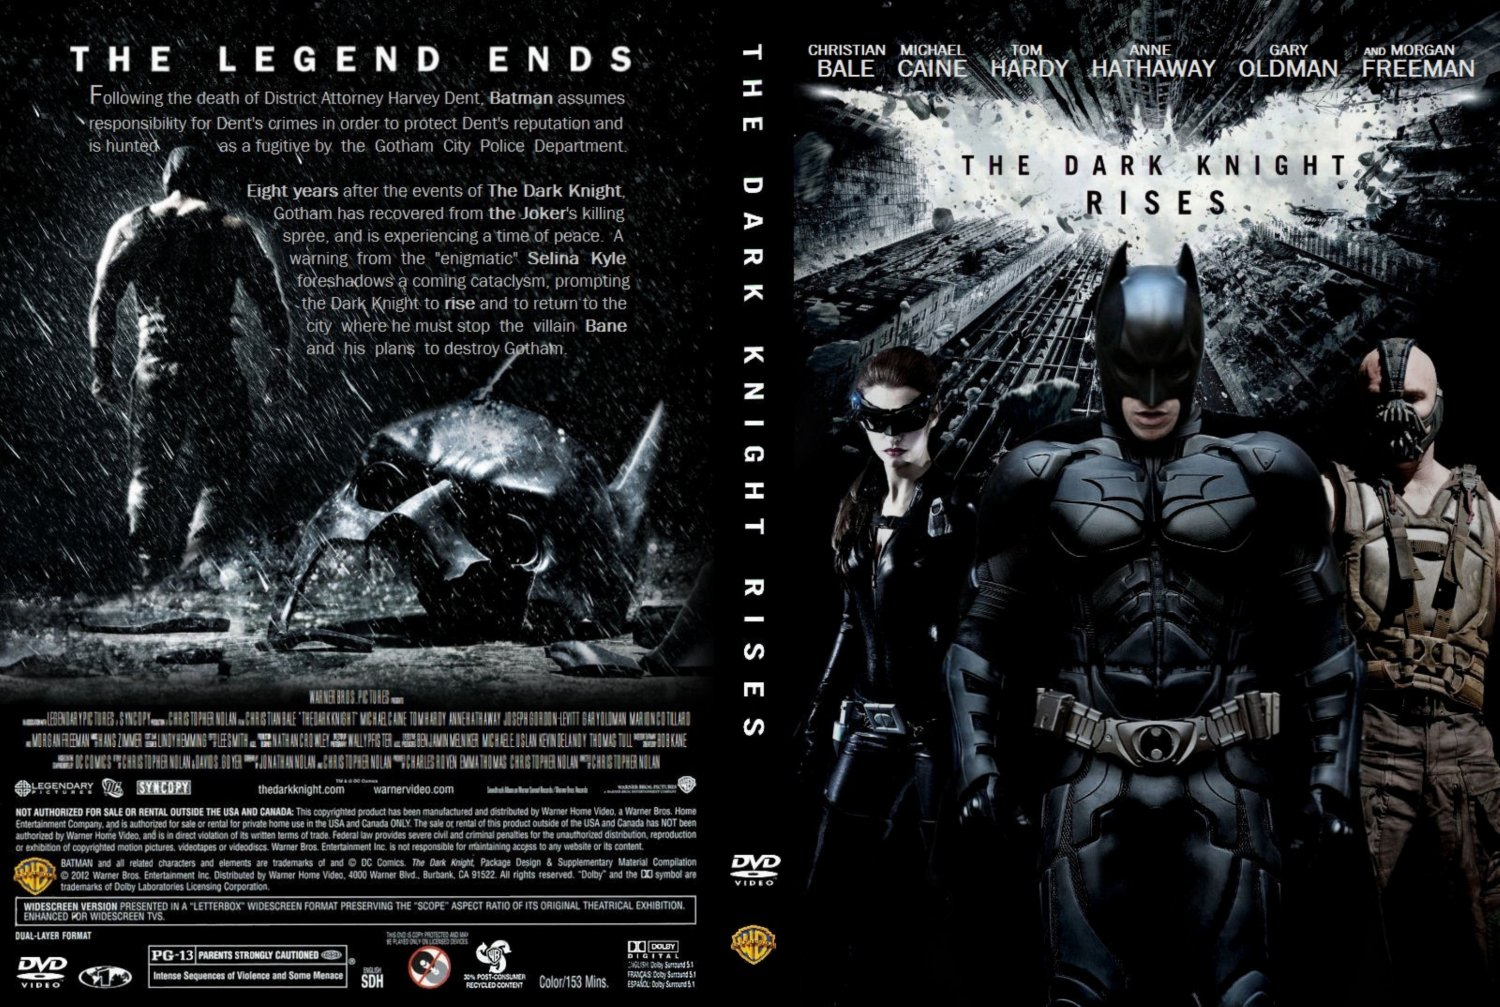 Dark Knight Rises Dvd Cover Batman The Dark Knight Rises